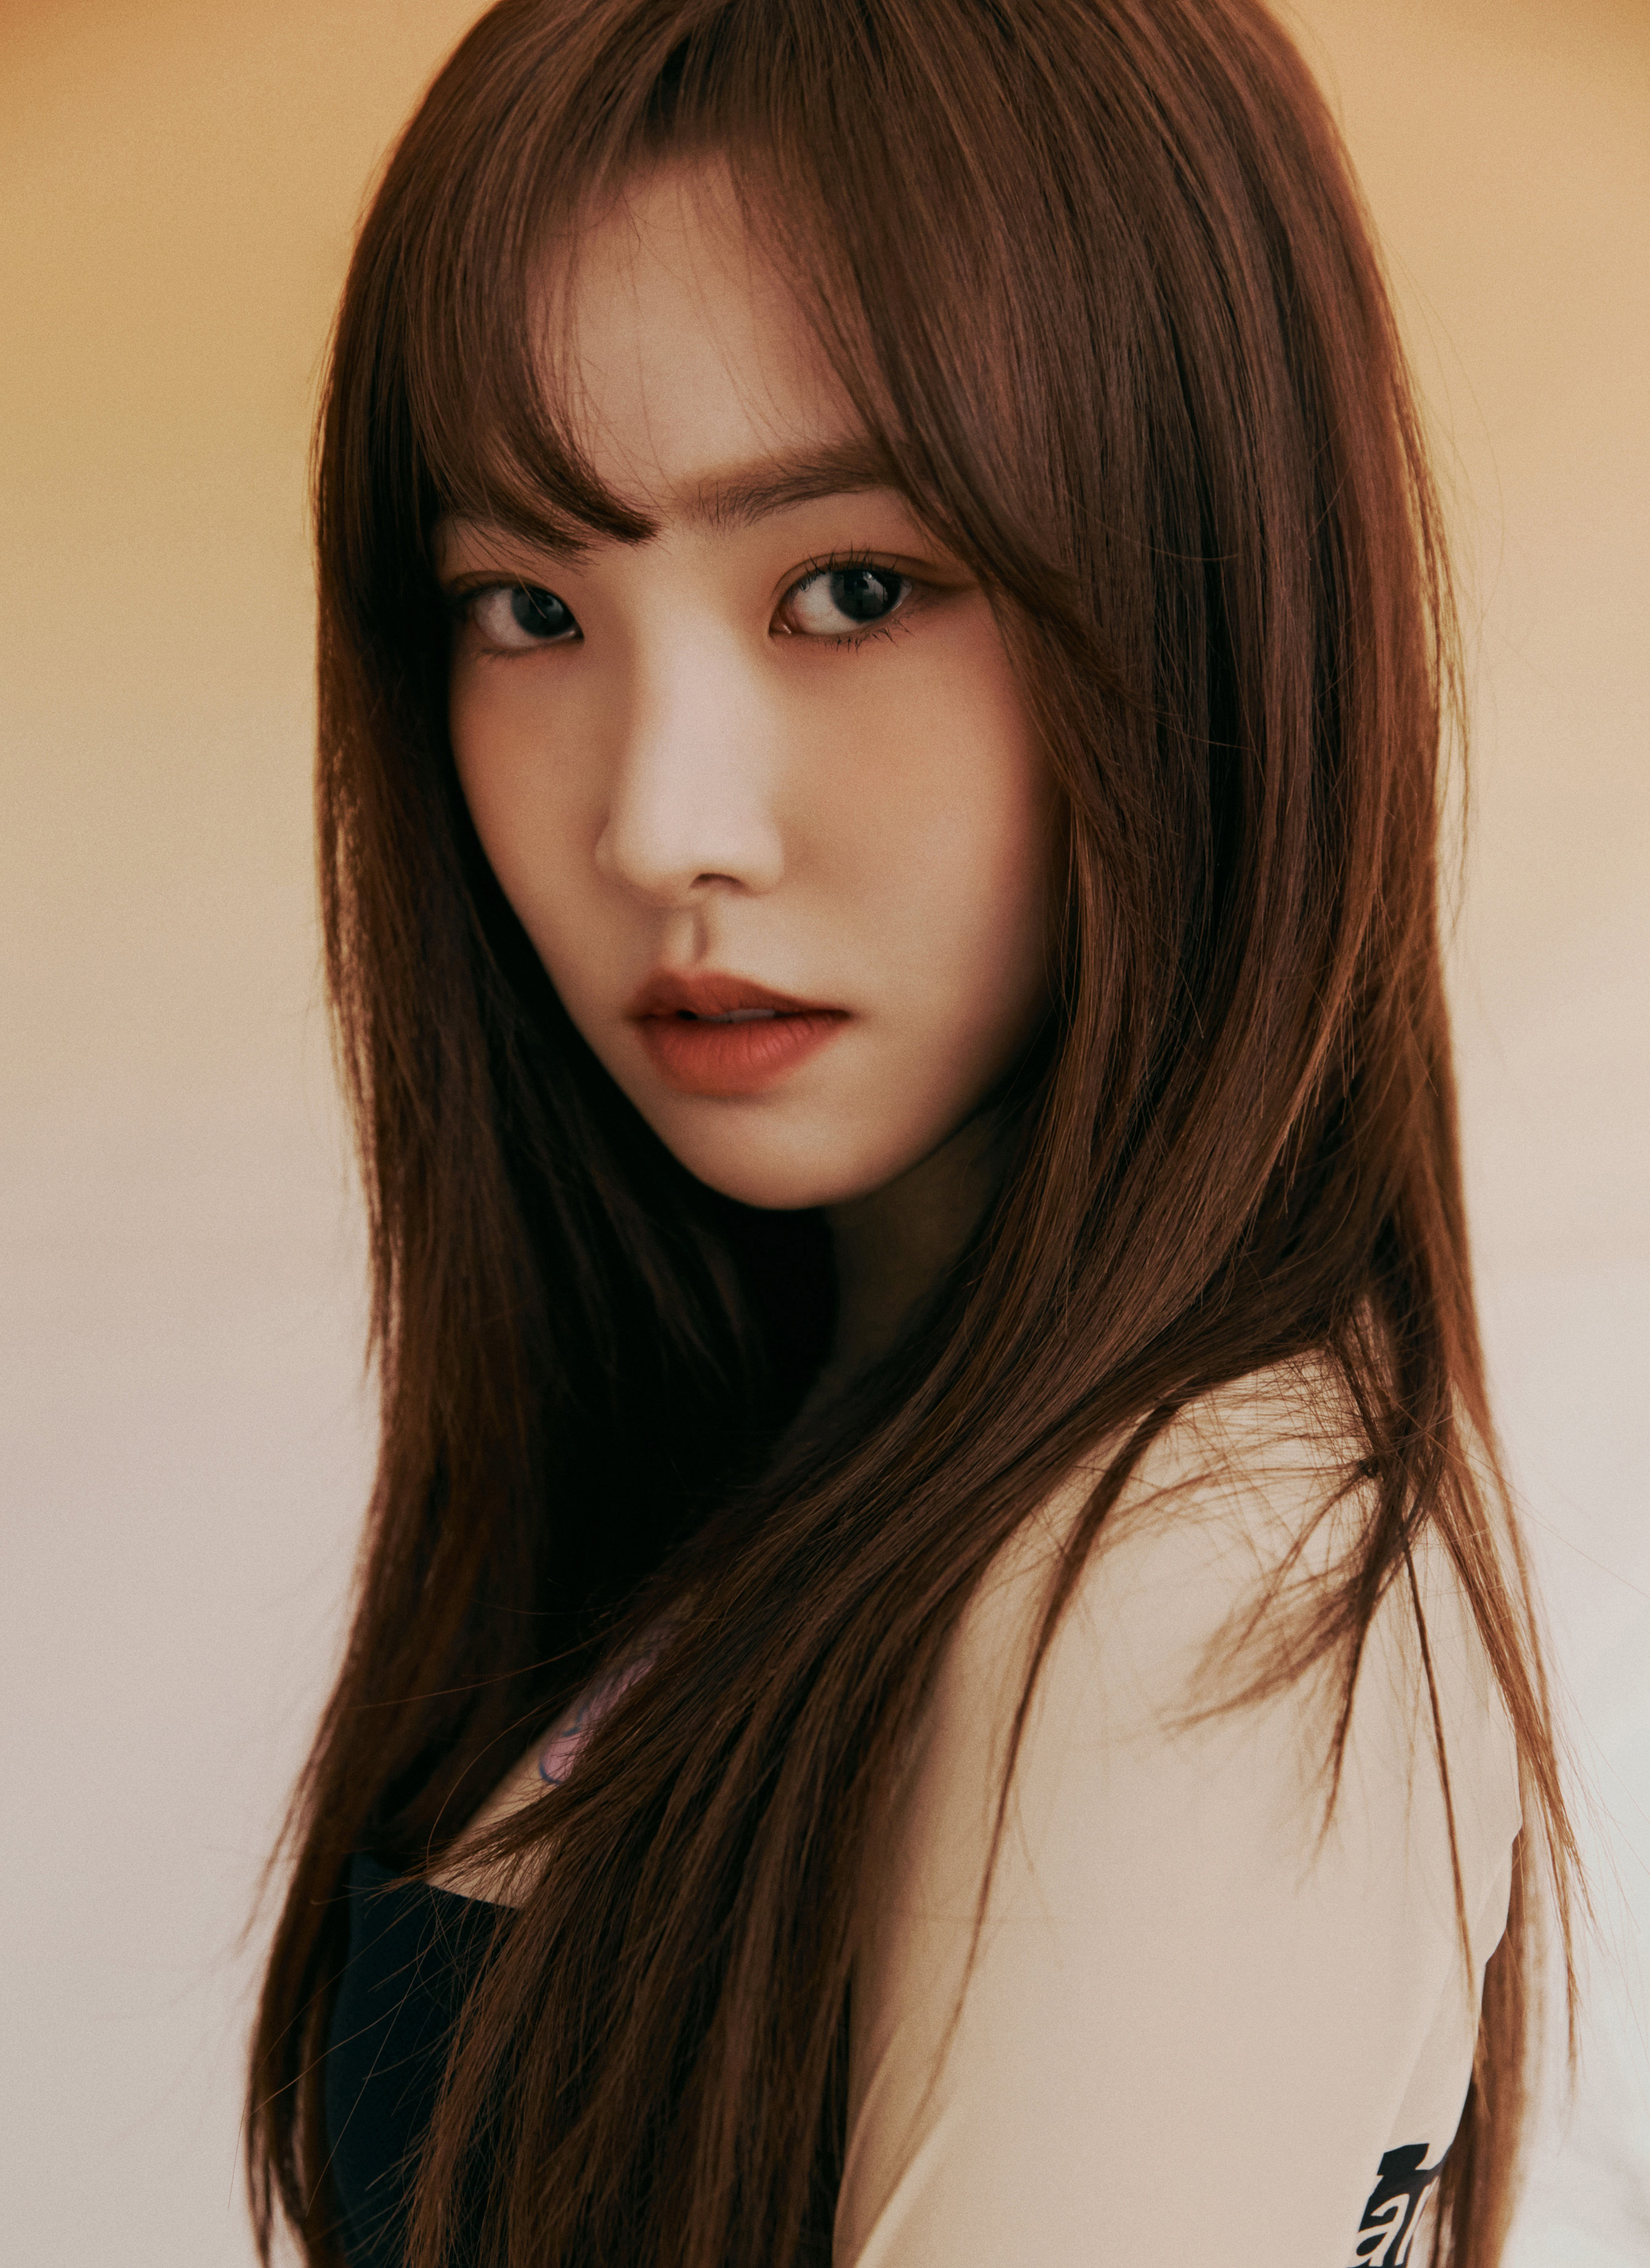 GFRIENDs Yuju Comforts Insecure Fan With Absolute Wit and